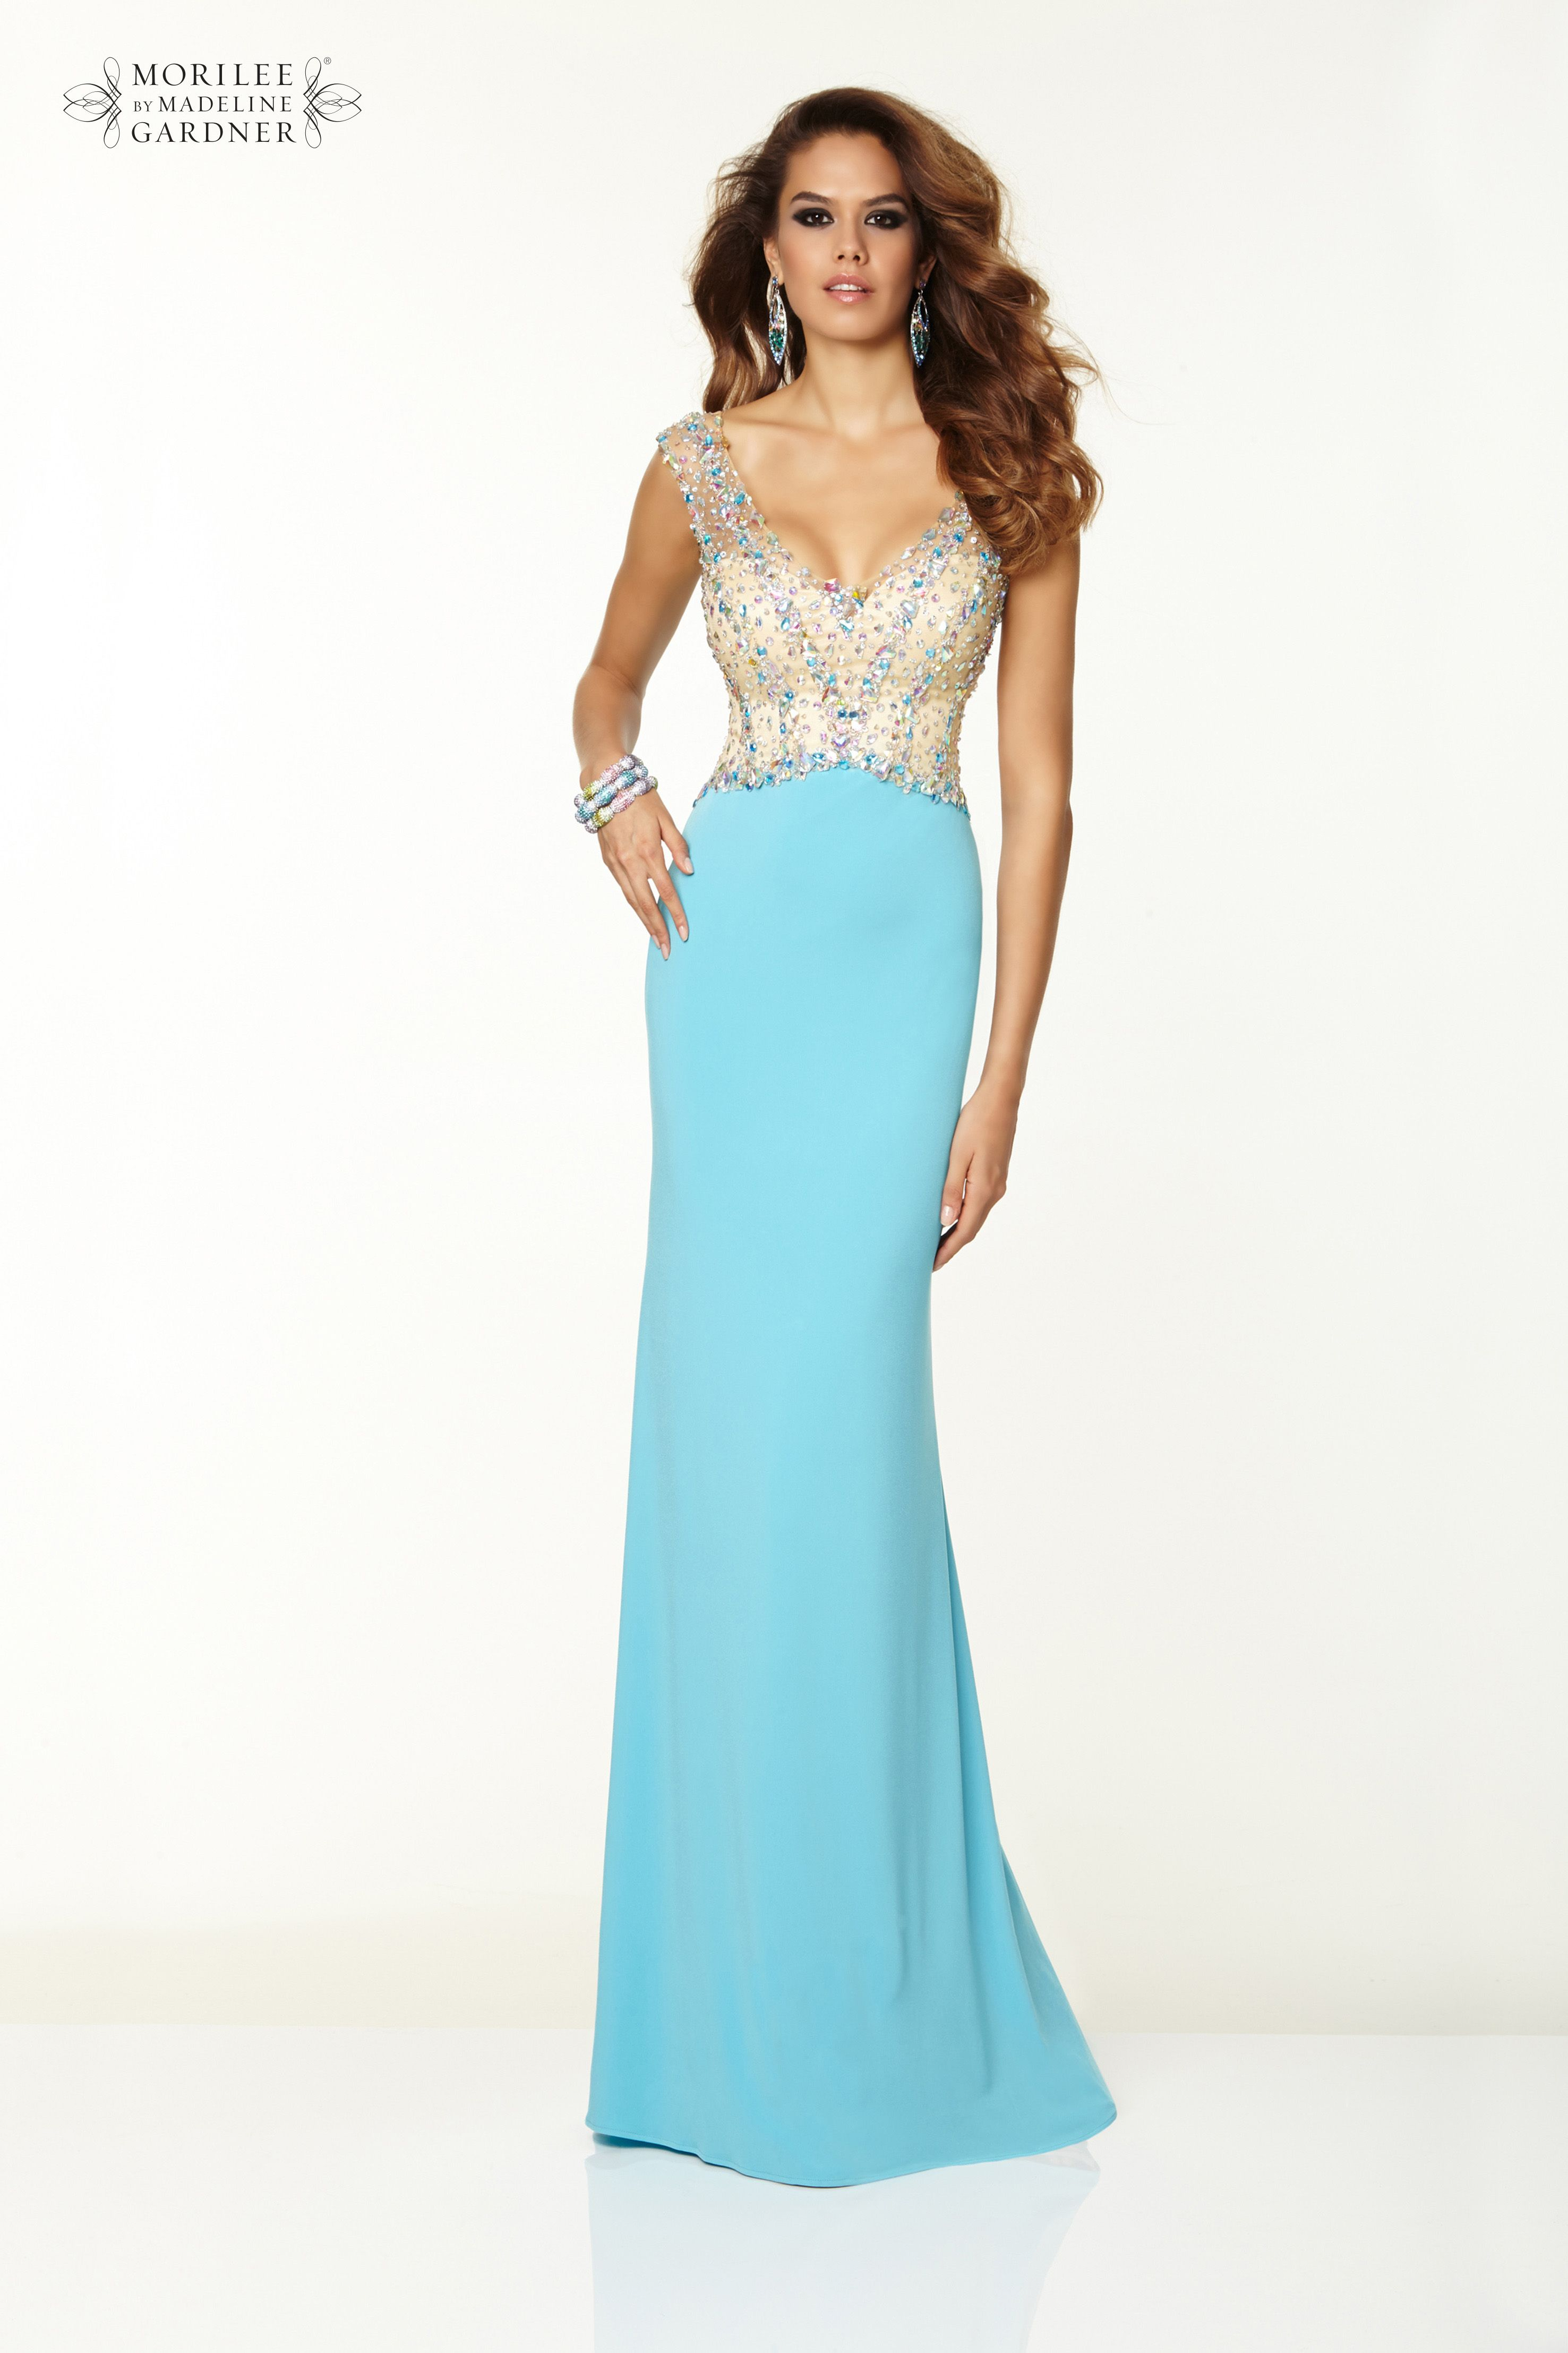 Mori Lee Paparazzi Prom Dress - Style 97053 - Available in Pink ...